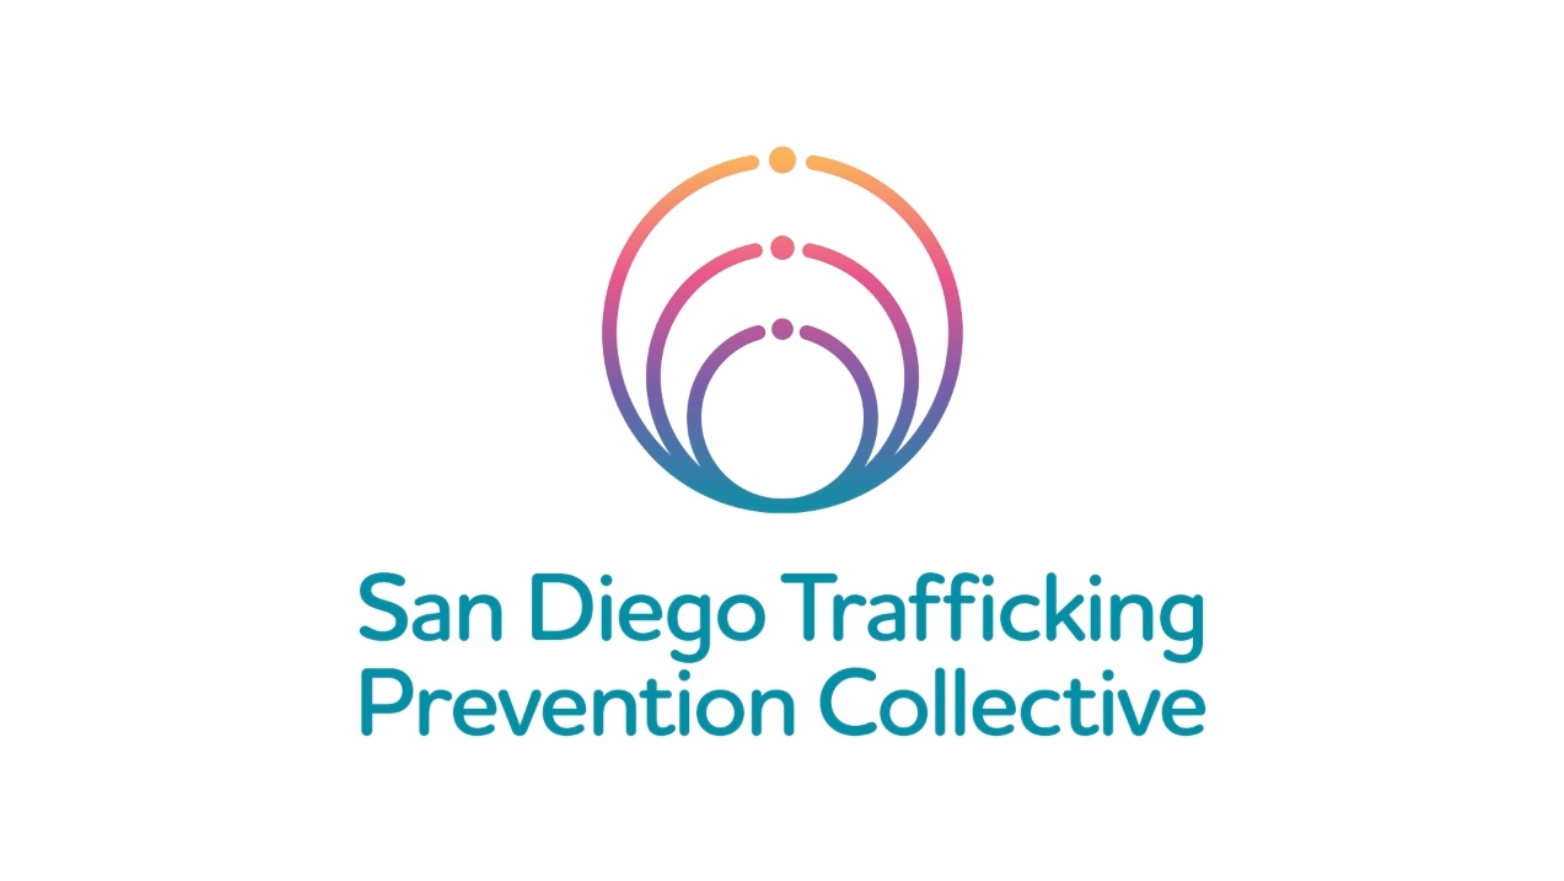 District Attorney hails $3 million grant to schools to fight human trafficking